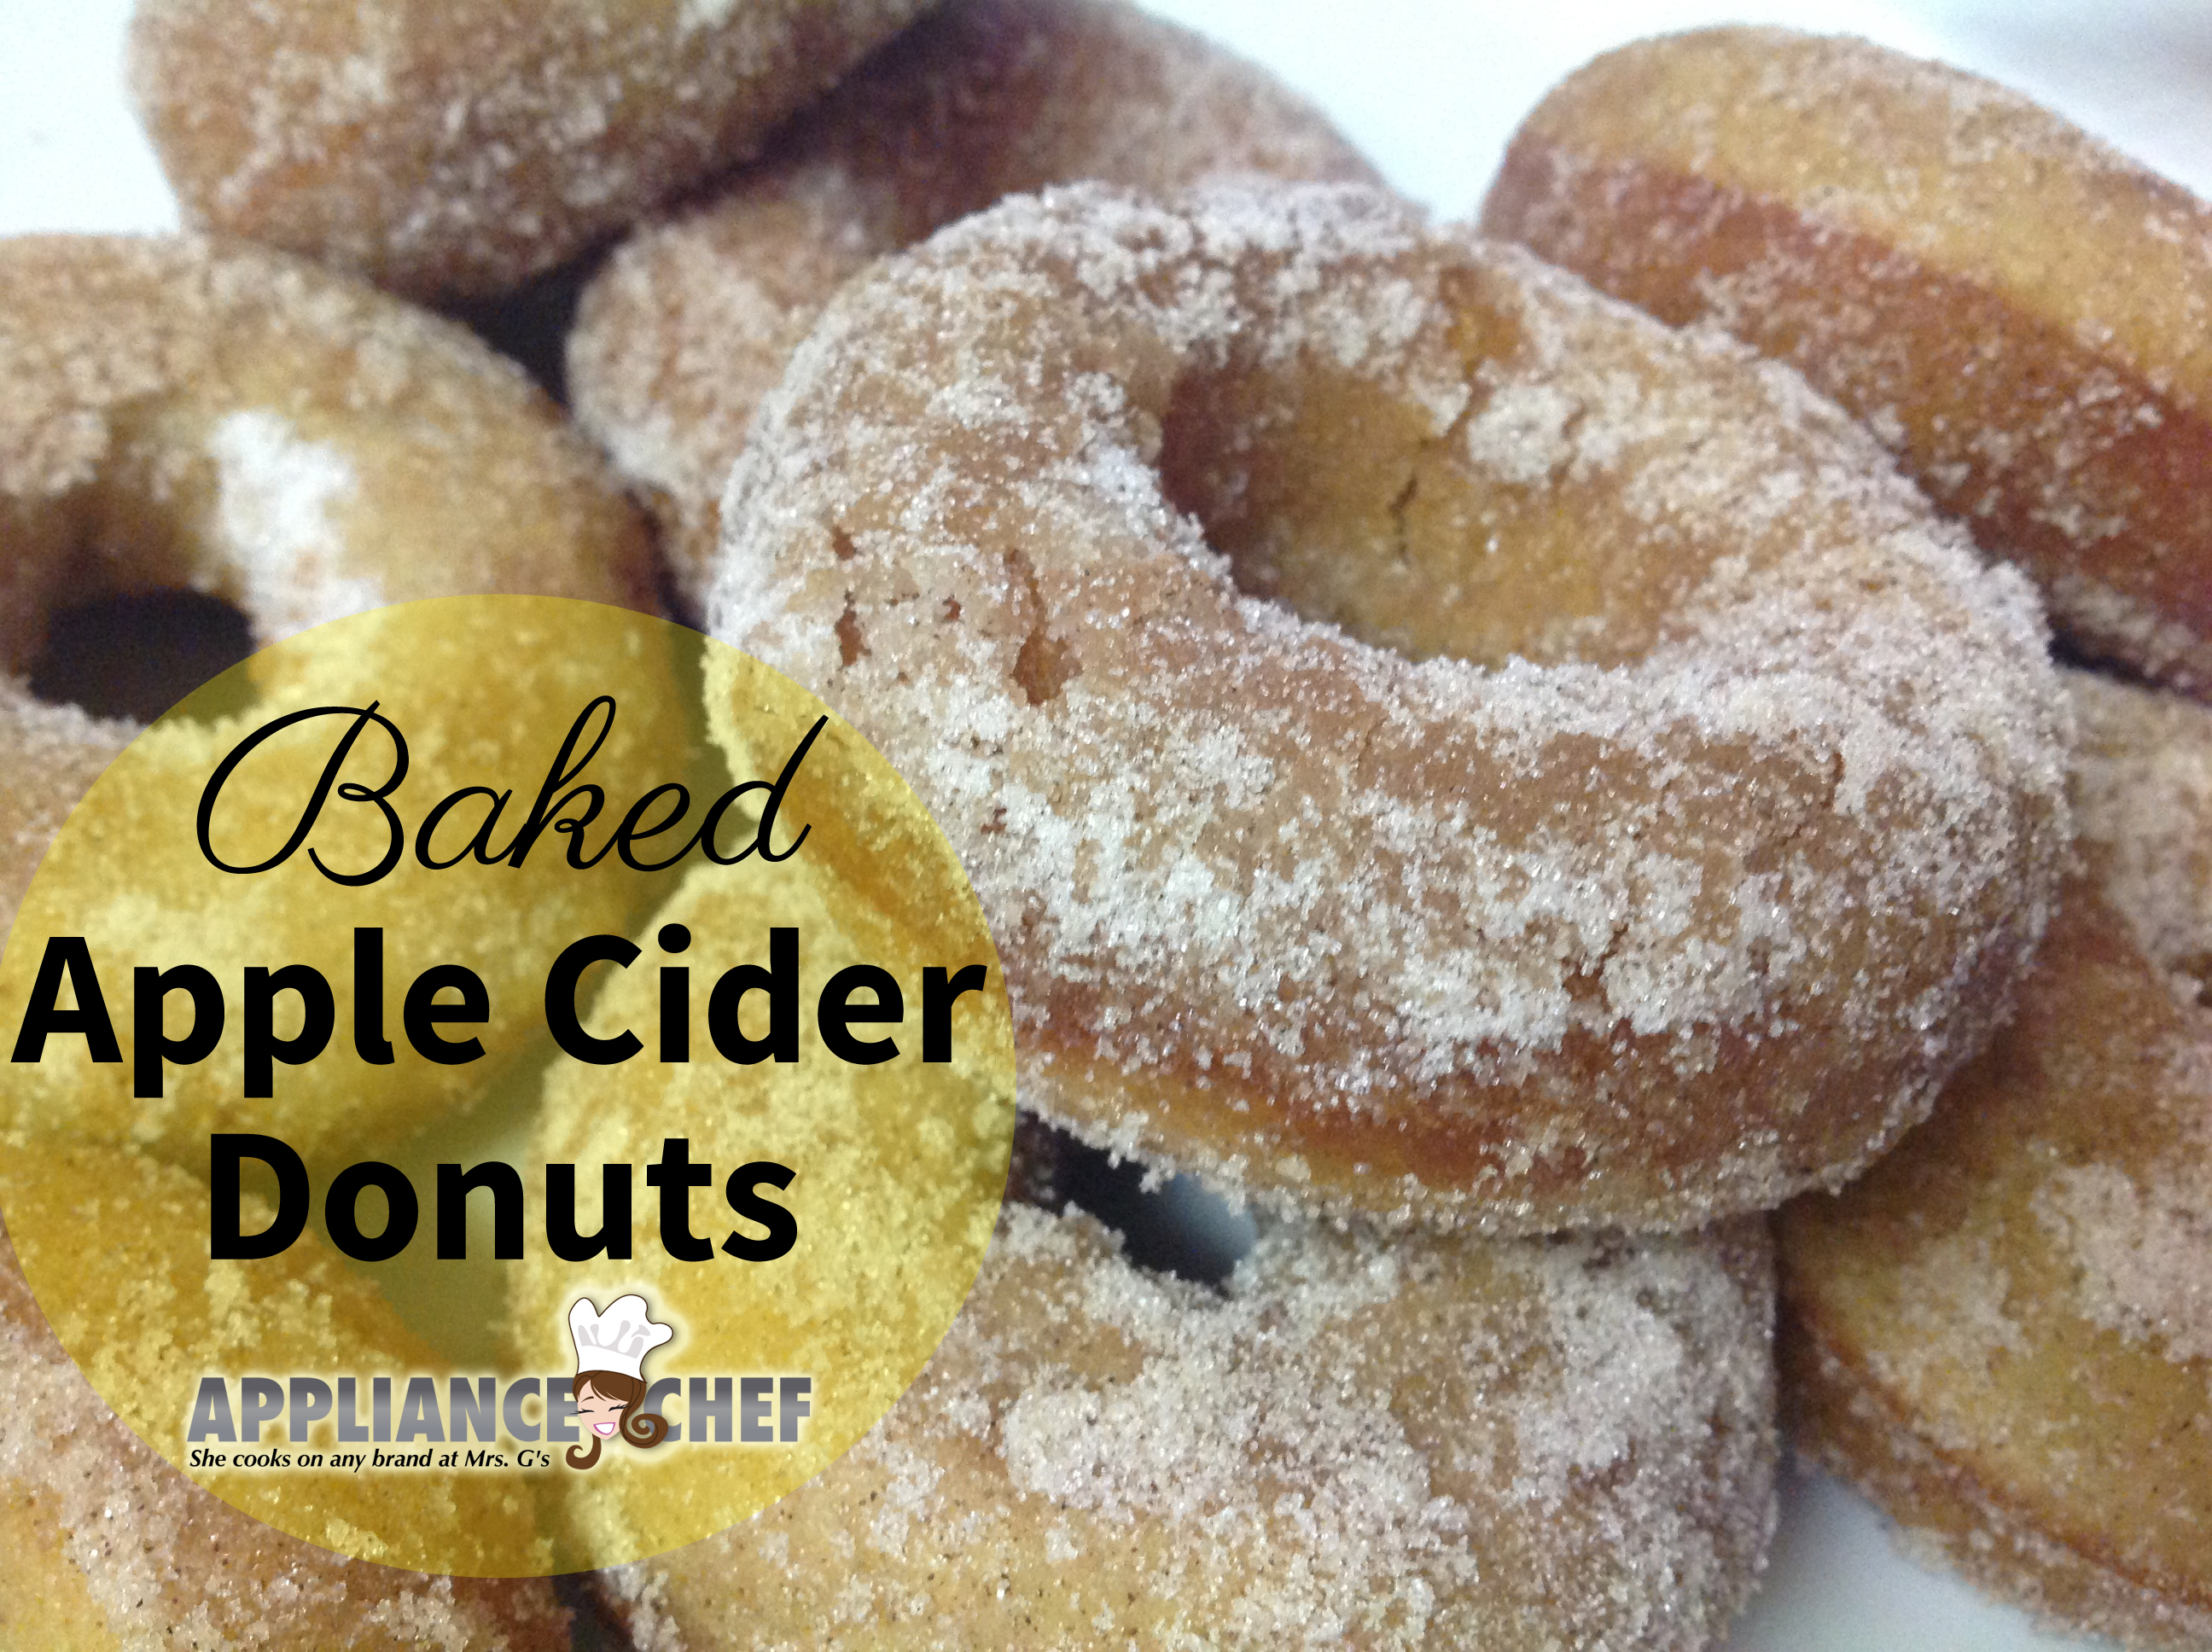 Baked Apple Cider Donuts with Terhune Orchards Apple Cider | Mrs. G's ...